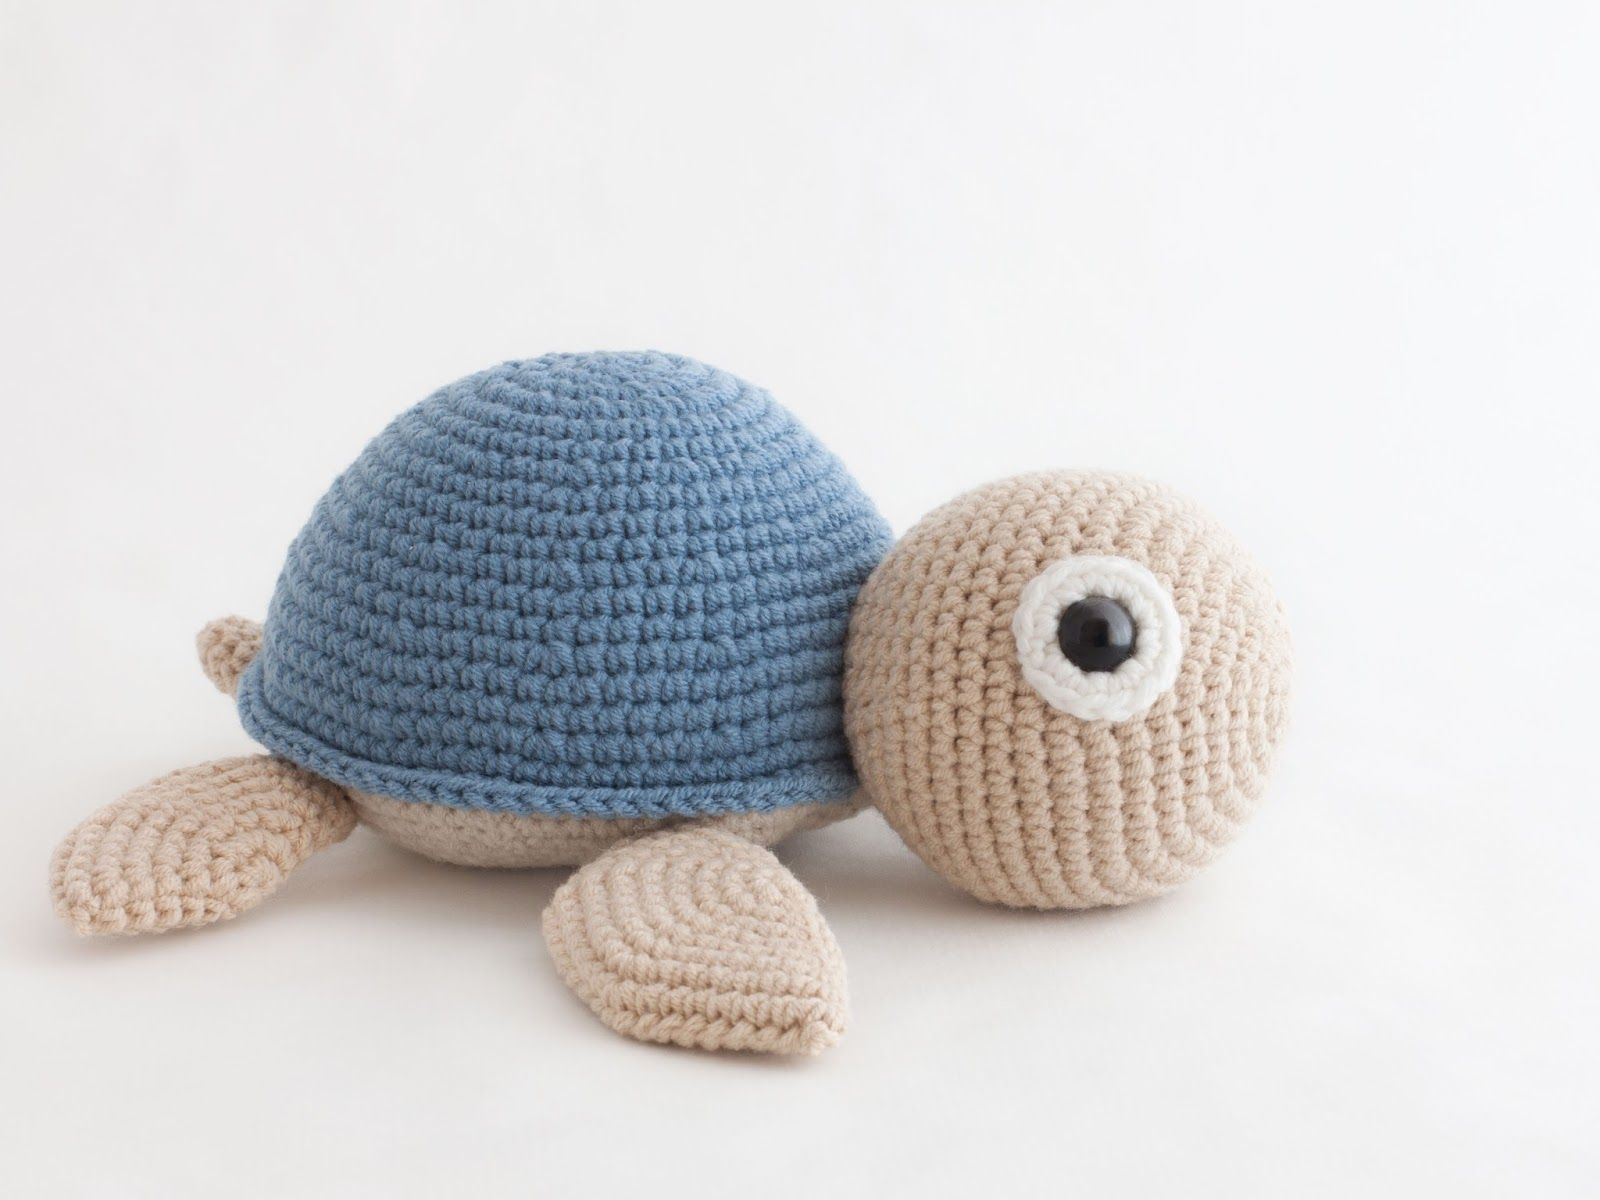 Tutorial Esfera Amigurumi : Amigurumi turtle free crochet pattern tutorial english pattern